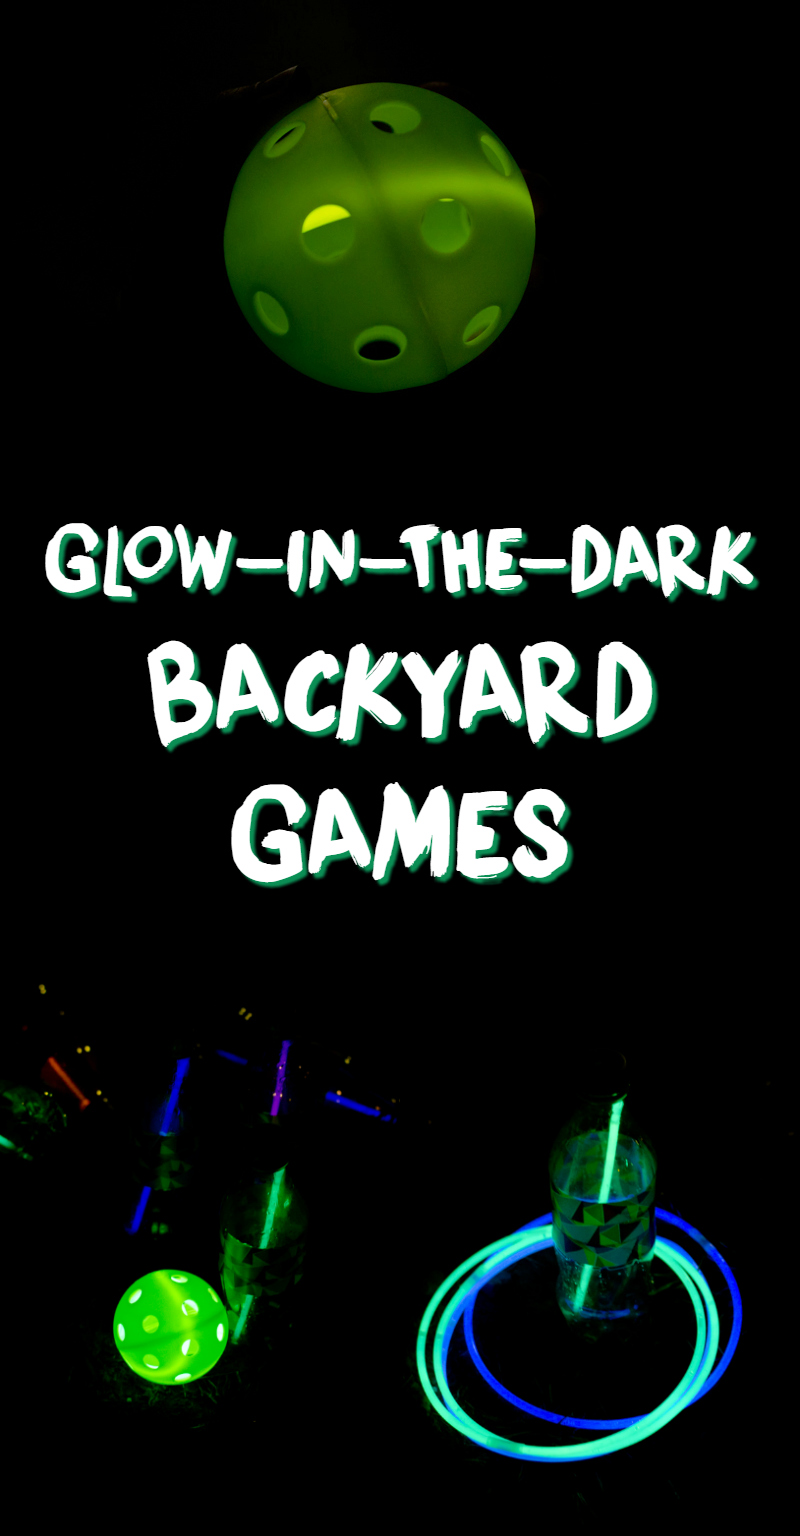 10 GLOW IN THE DARK GAMES FOR SUMMER FUN